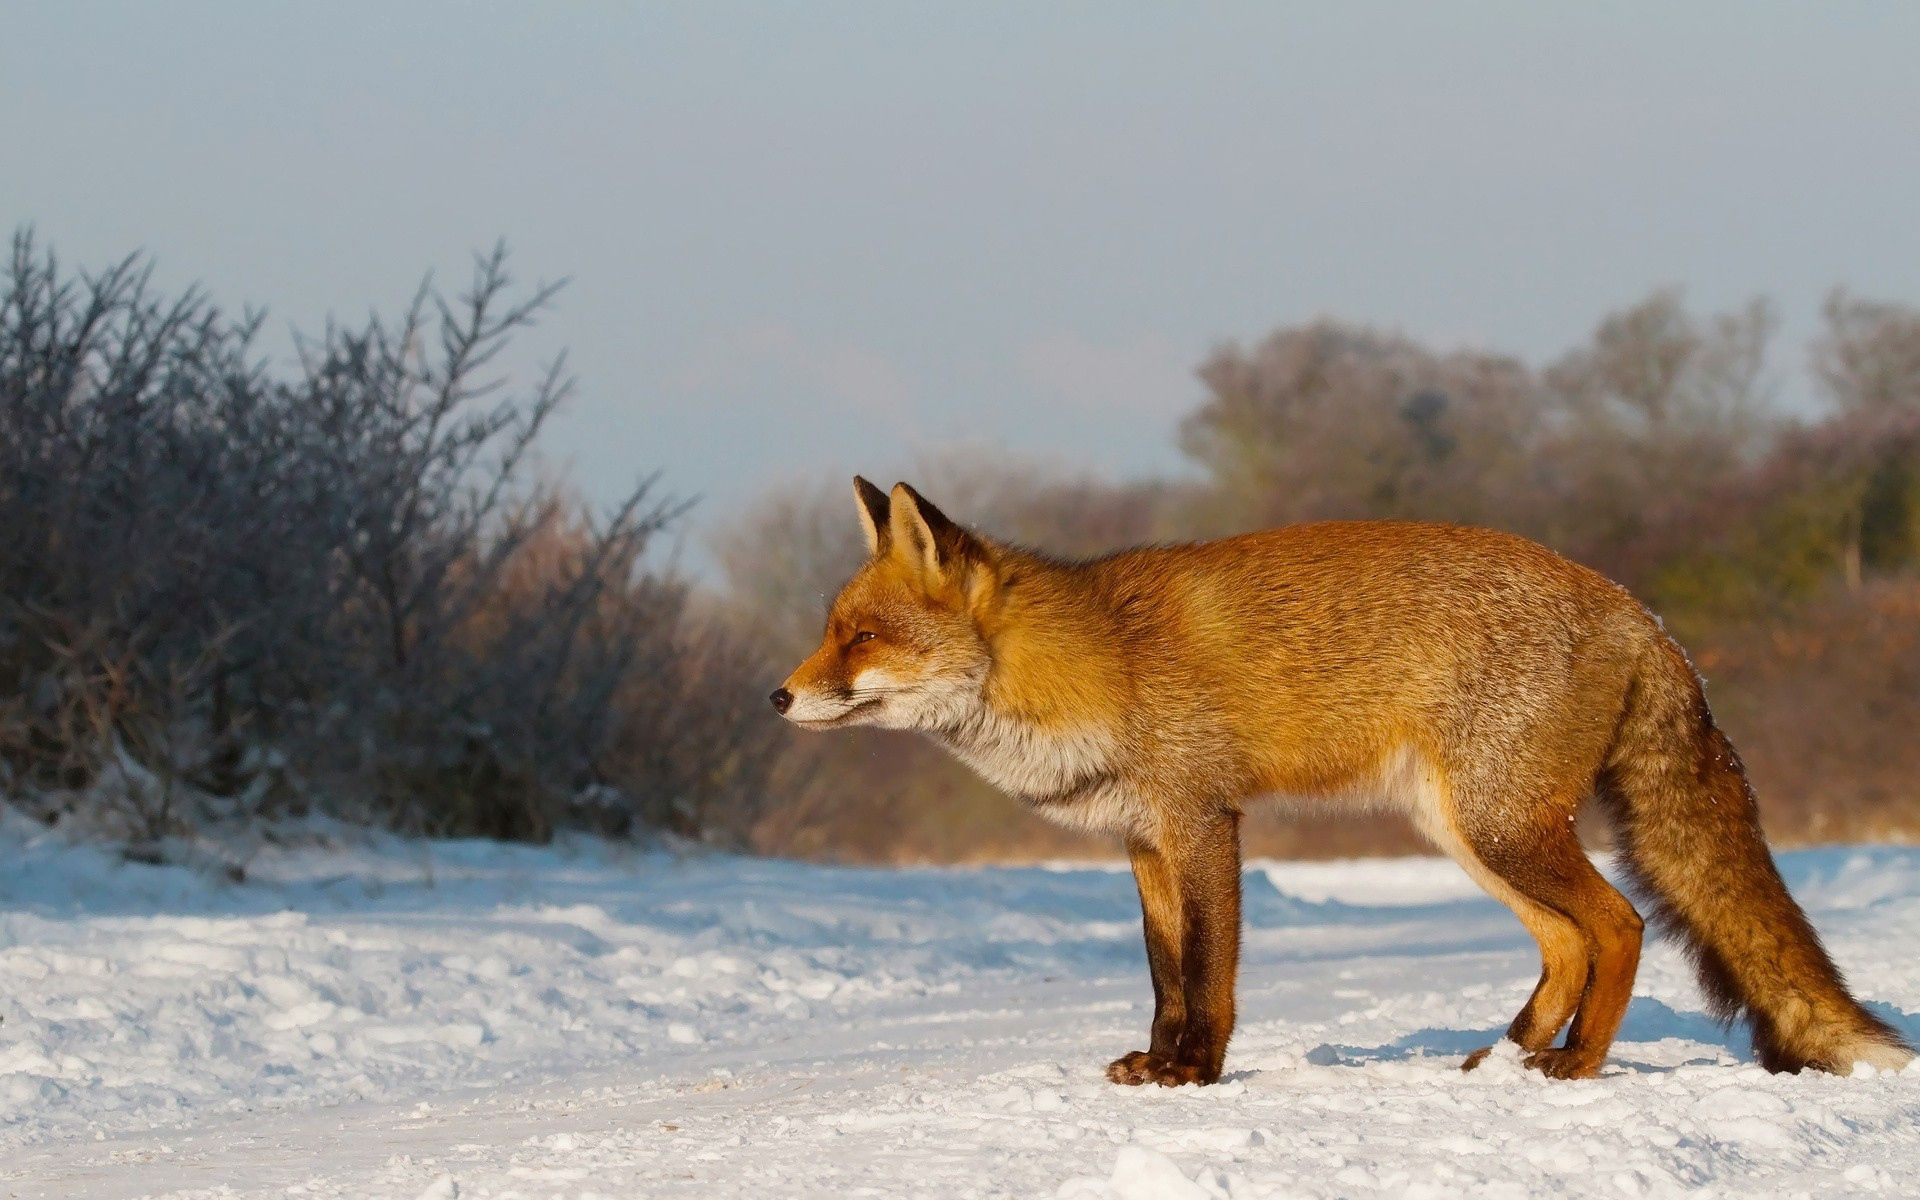 66654 download wallpaper Animals, Fox, Snow, Stroll, Hunting, Hunt screensavers and pictures for free